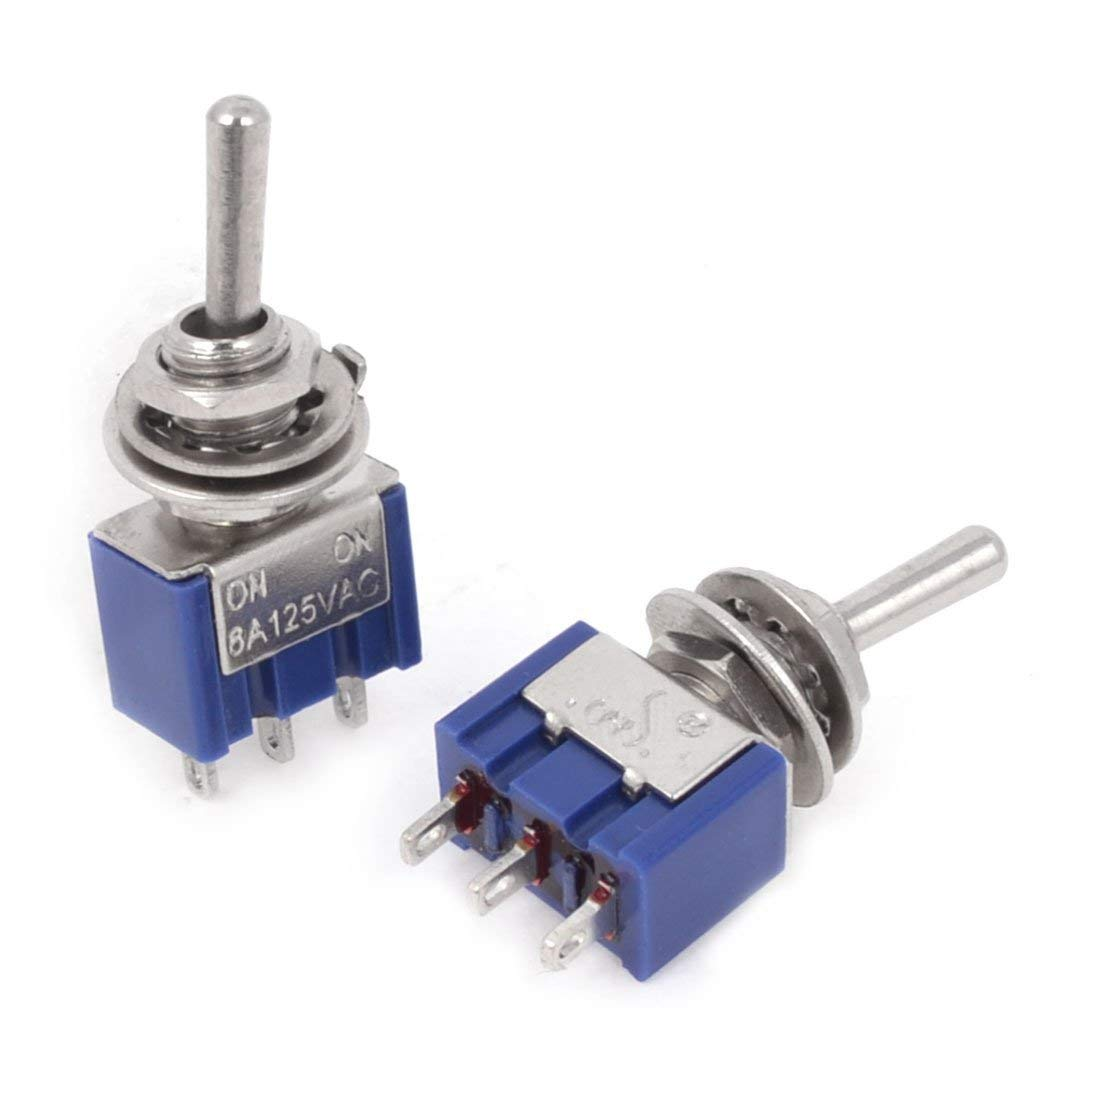 AC125V 6A ON/ON SPDT 3 Terminals 2 Position Toggle Switch MTS102